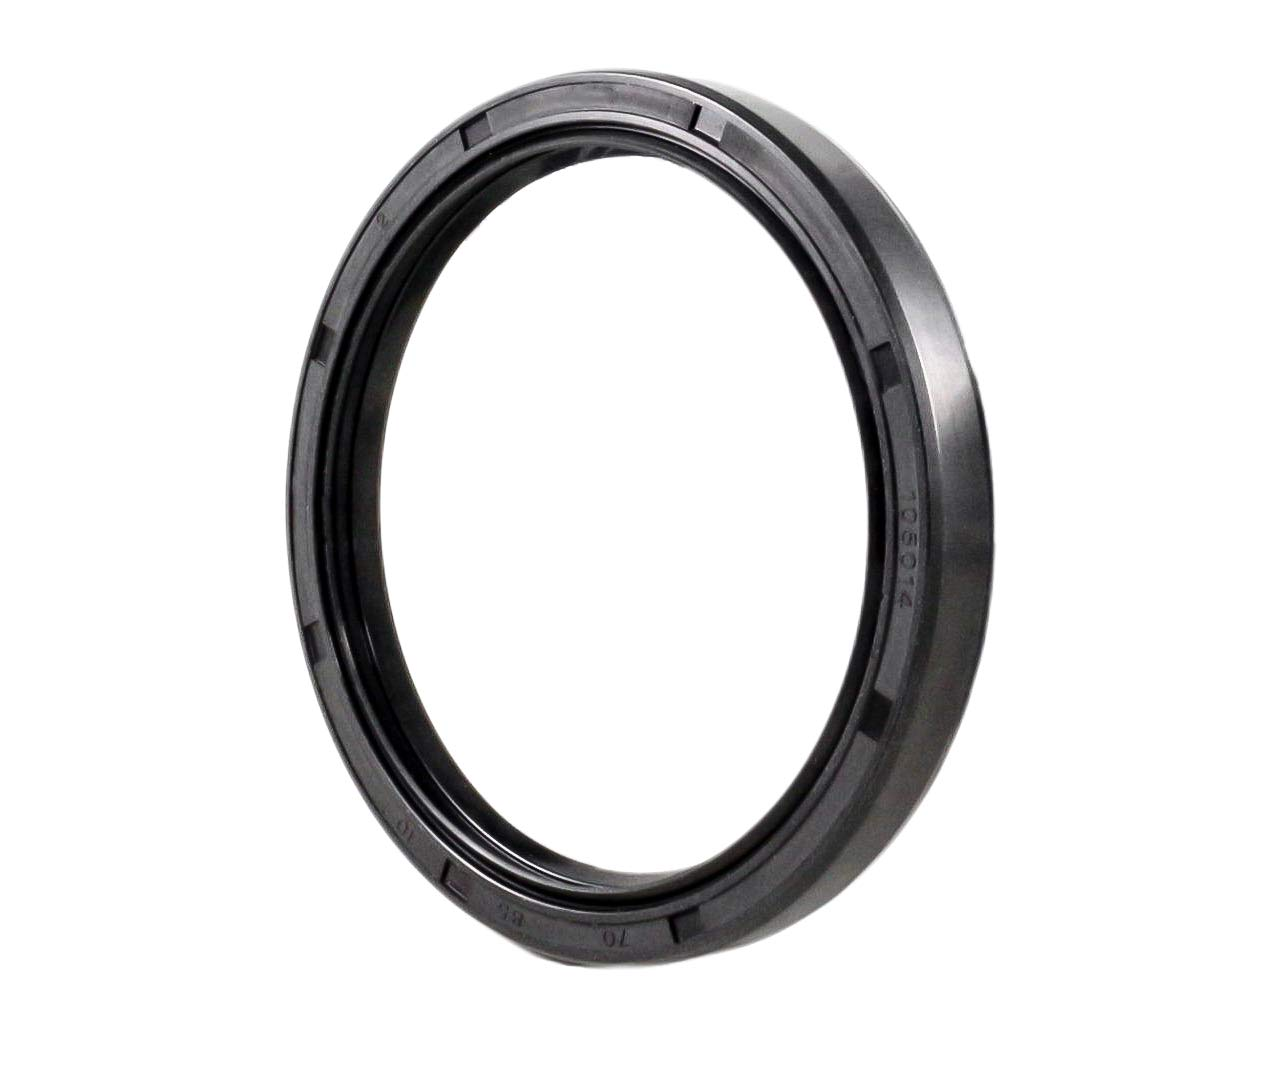 2.756x3.346x0.394 Single Metal Case w//Nitrile Rubber Coating 70mmX85mmX10mm Oil Seal 70X85X10 Oil Seal Grease Seal TC |EAI Double Lip w//Garter Spring